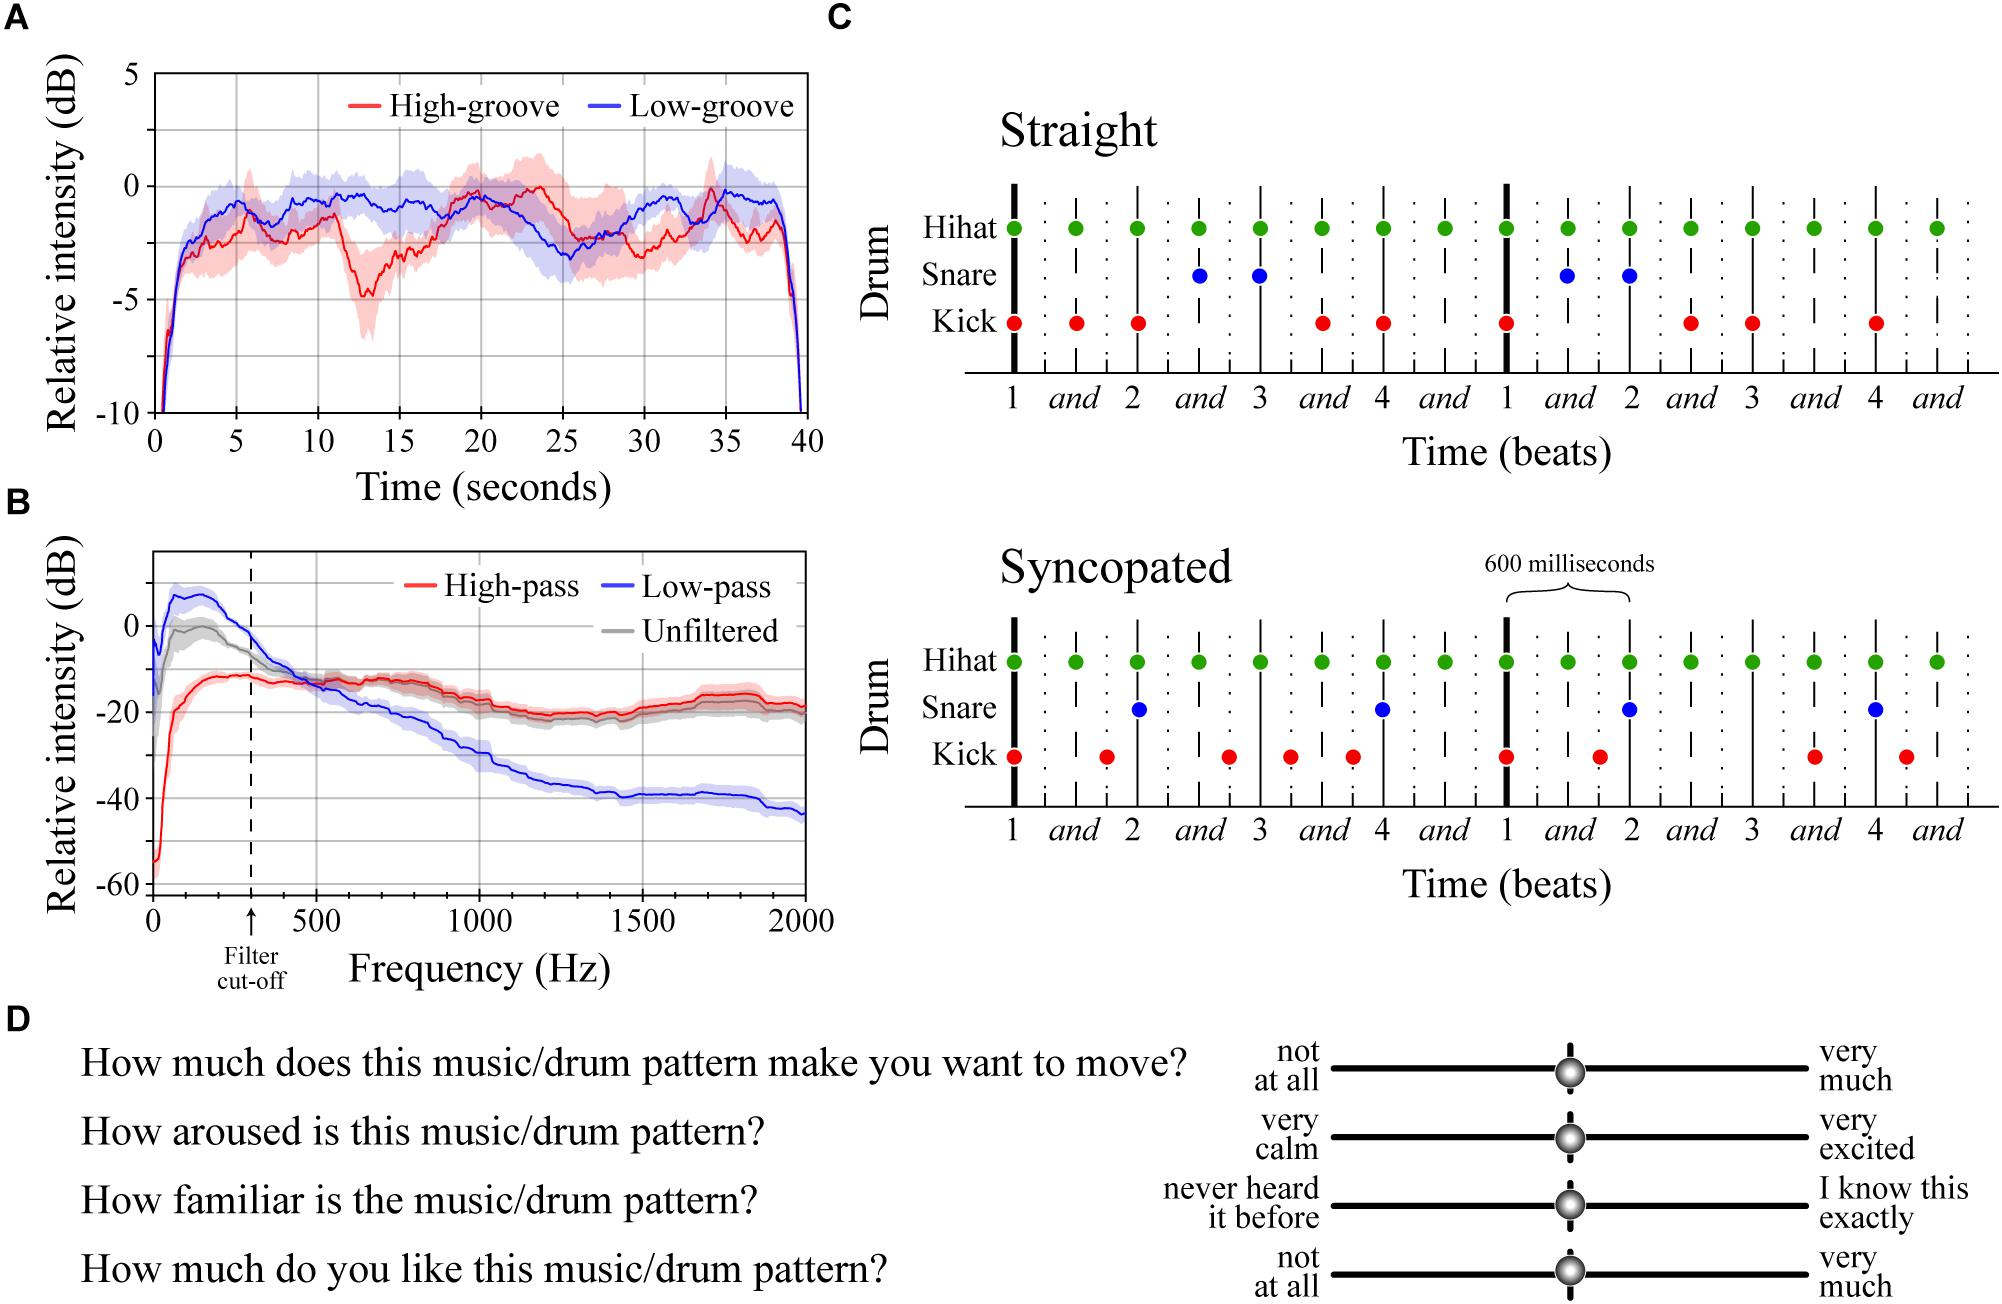 Frontiers | Pupillometry of Groove: Evidence for